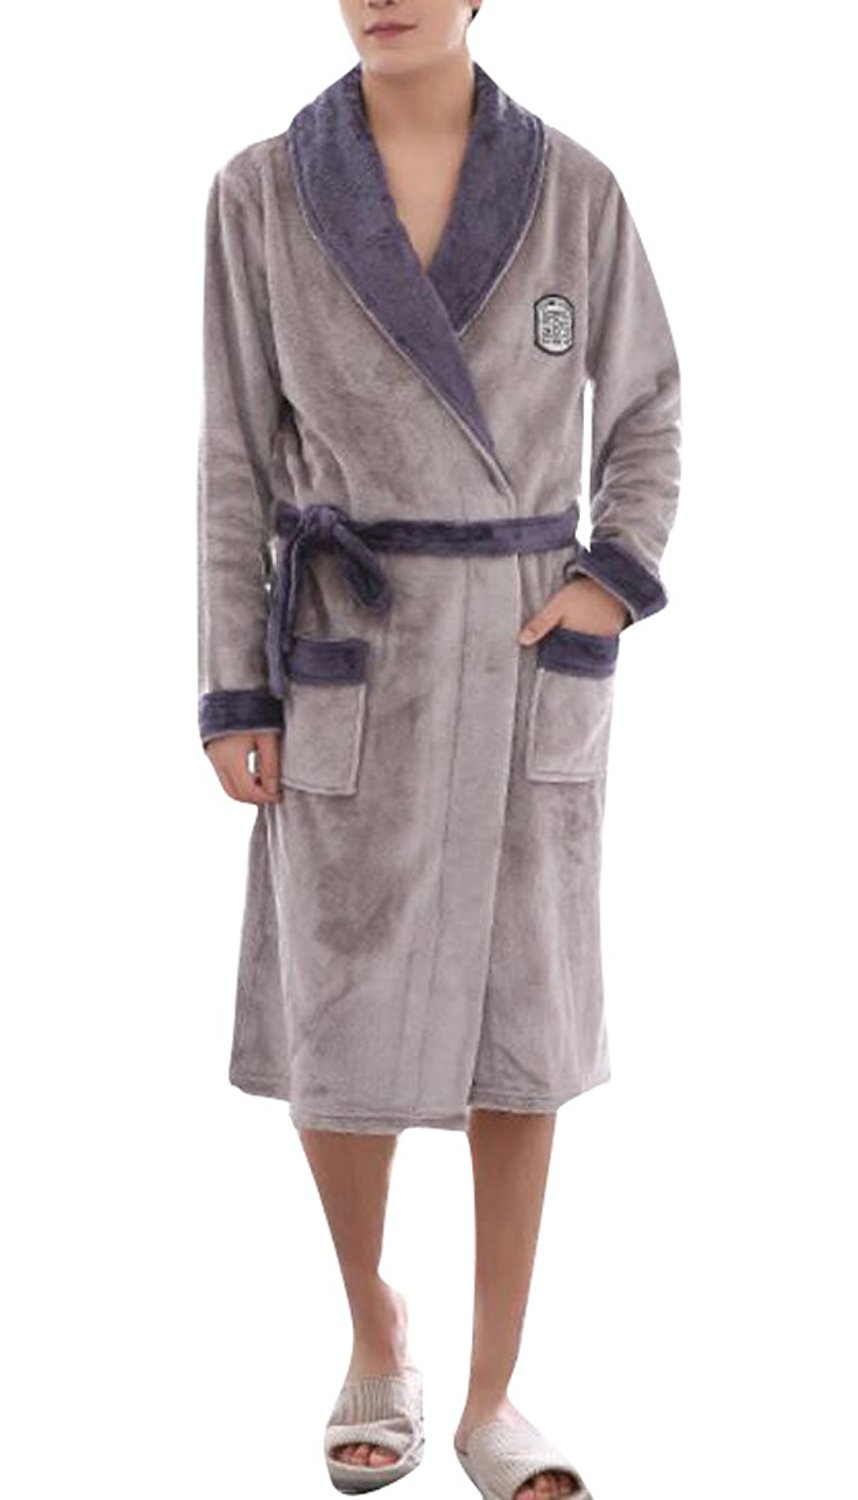 Pandapang Mens Loungewear Silk Belted Lounge Long Sleeve Bathrobe Cozy Robe Robes Sleep Lounge